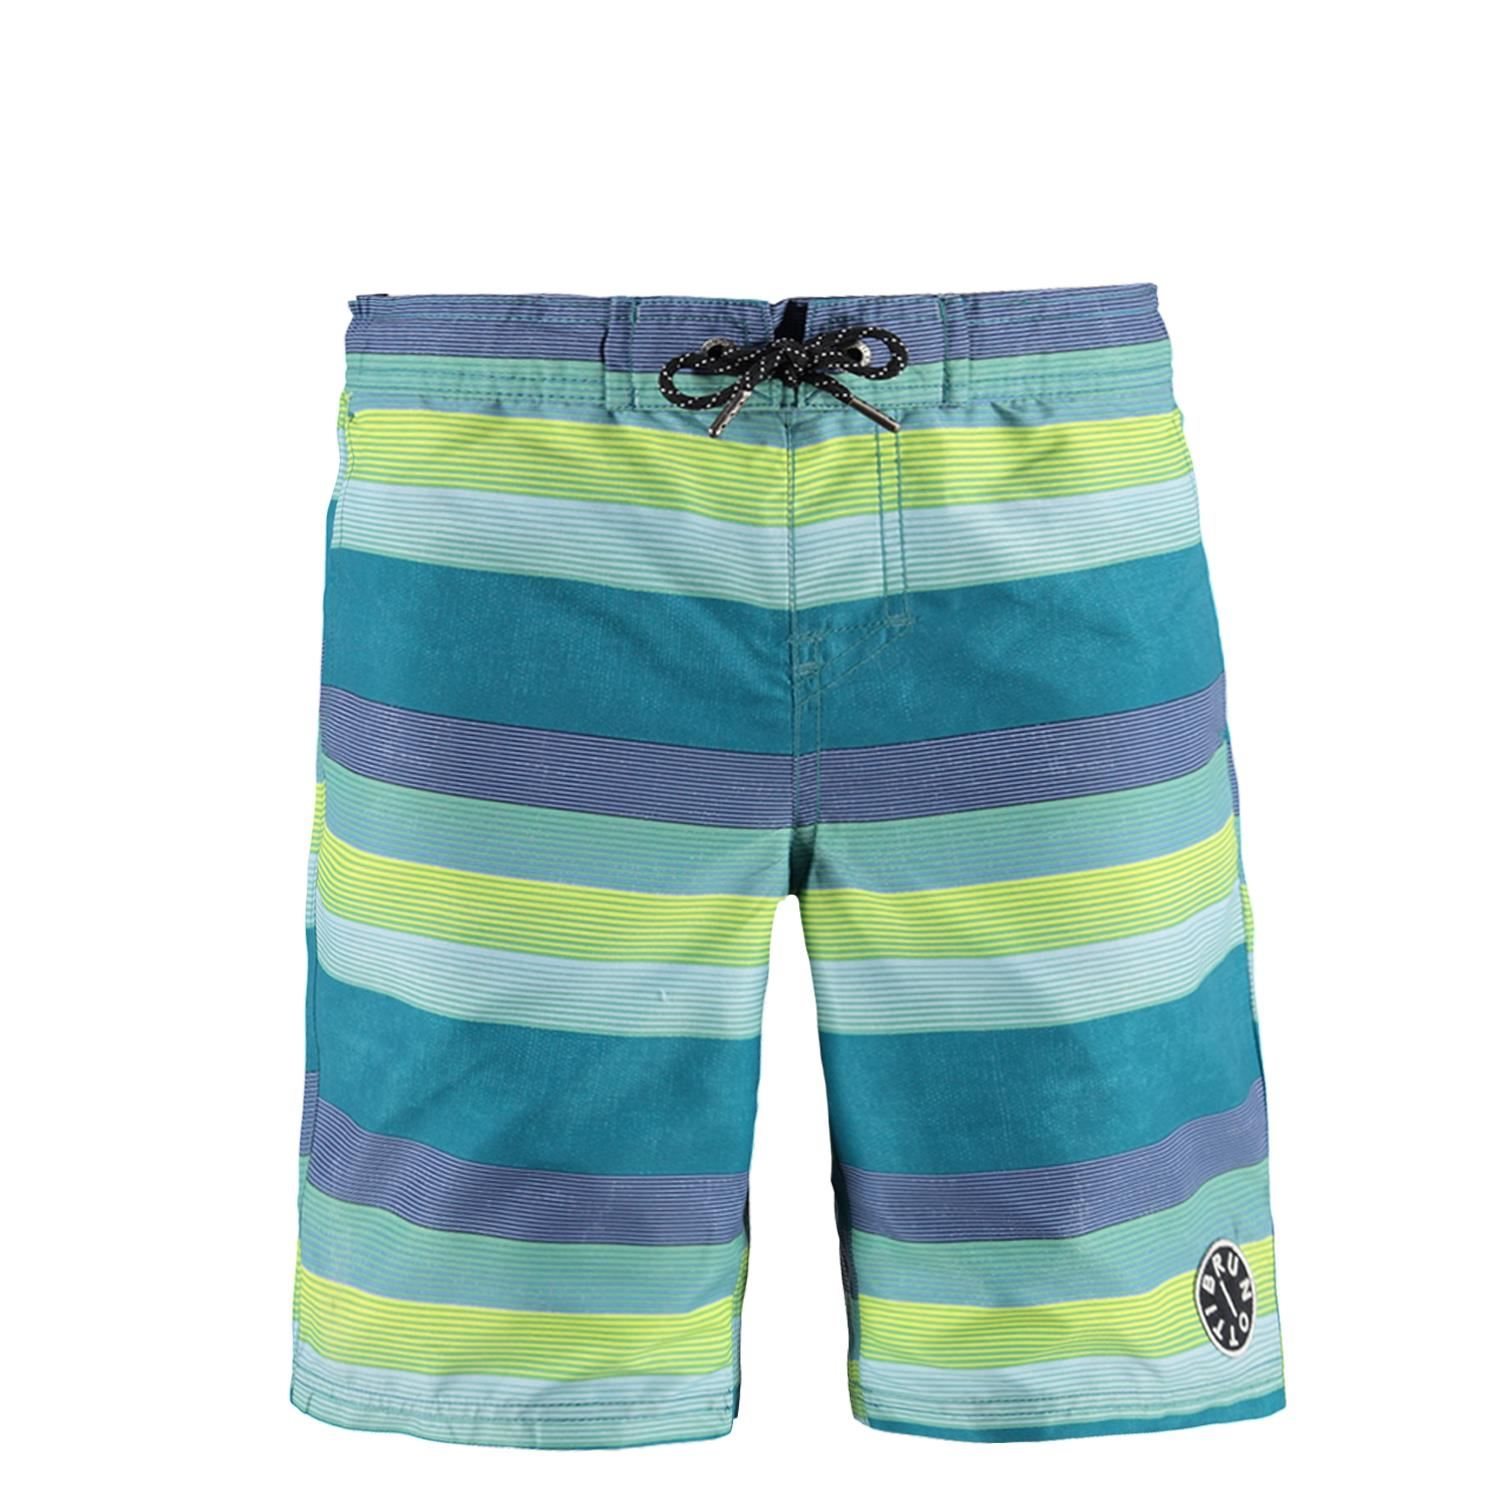 extra korting 43% Korting Brunotti Boardwalk Men Shorts